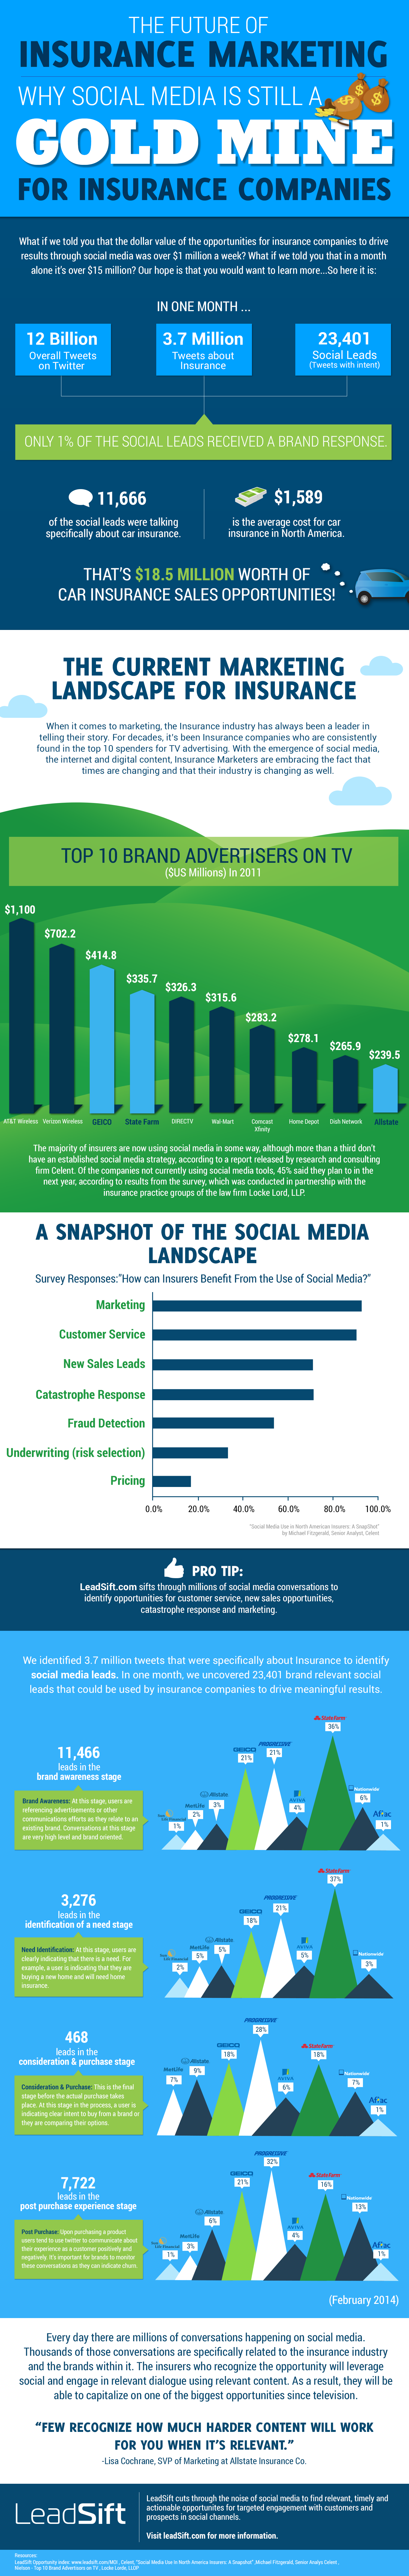 Why Social Media is Still a Gold Mine For Insurance Companies Infographic